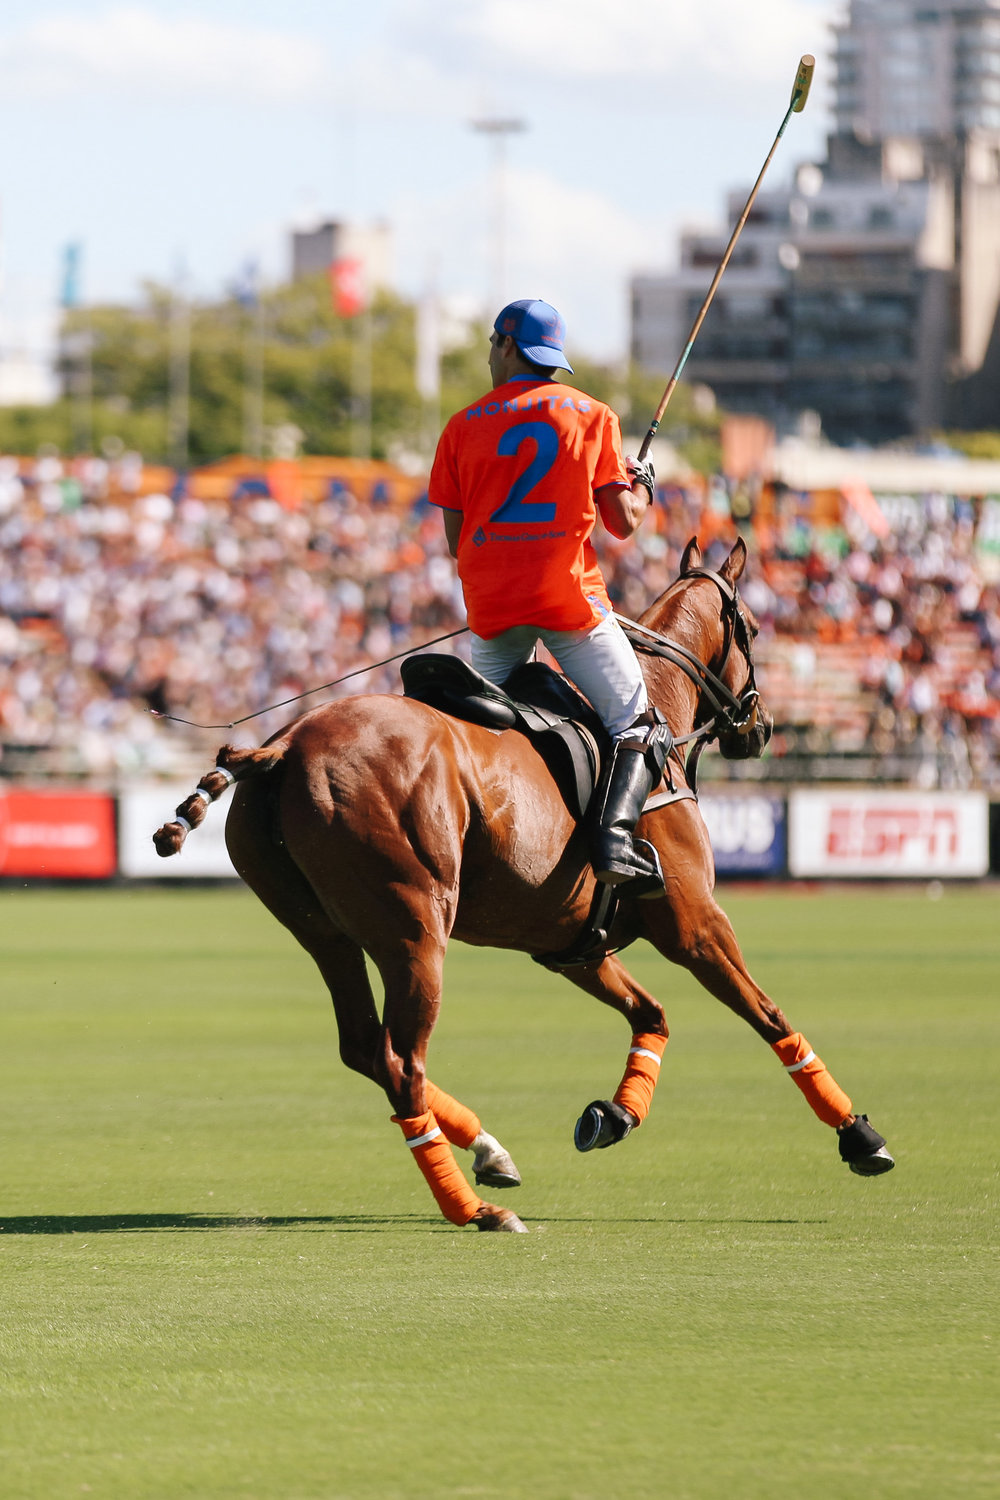 LCB STYLE ARGENTINE OPEN POLO PALERMO14.jpg